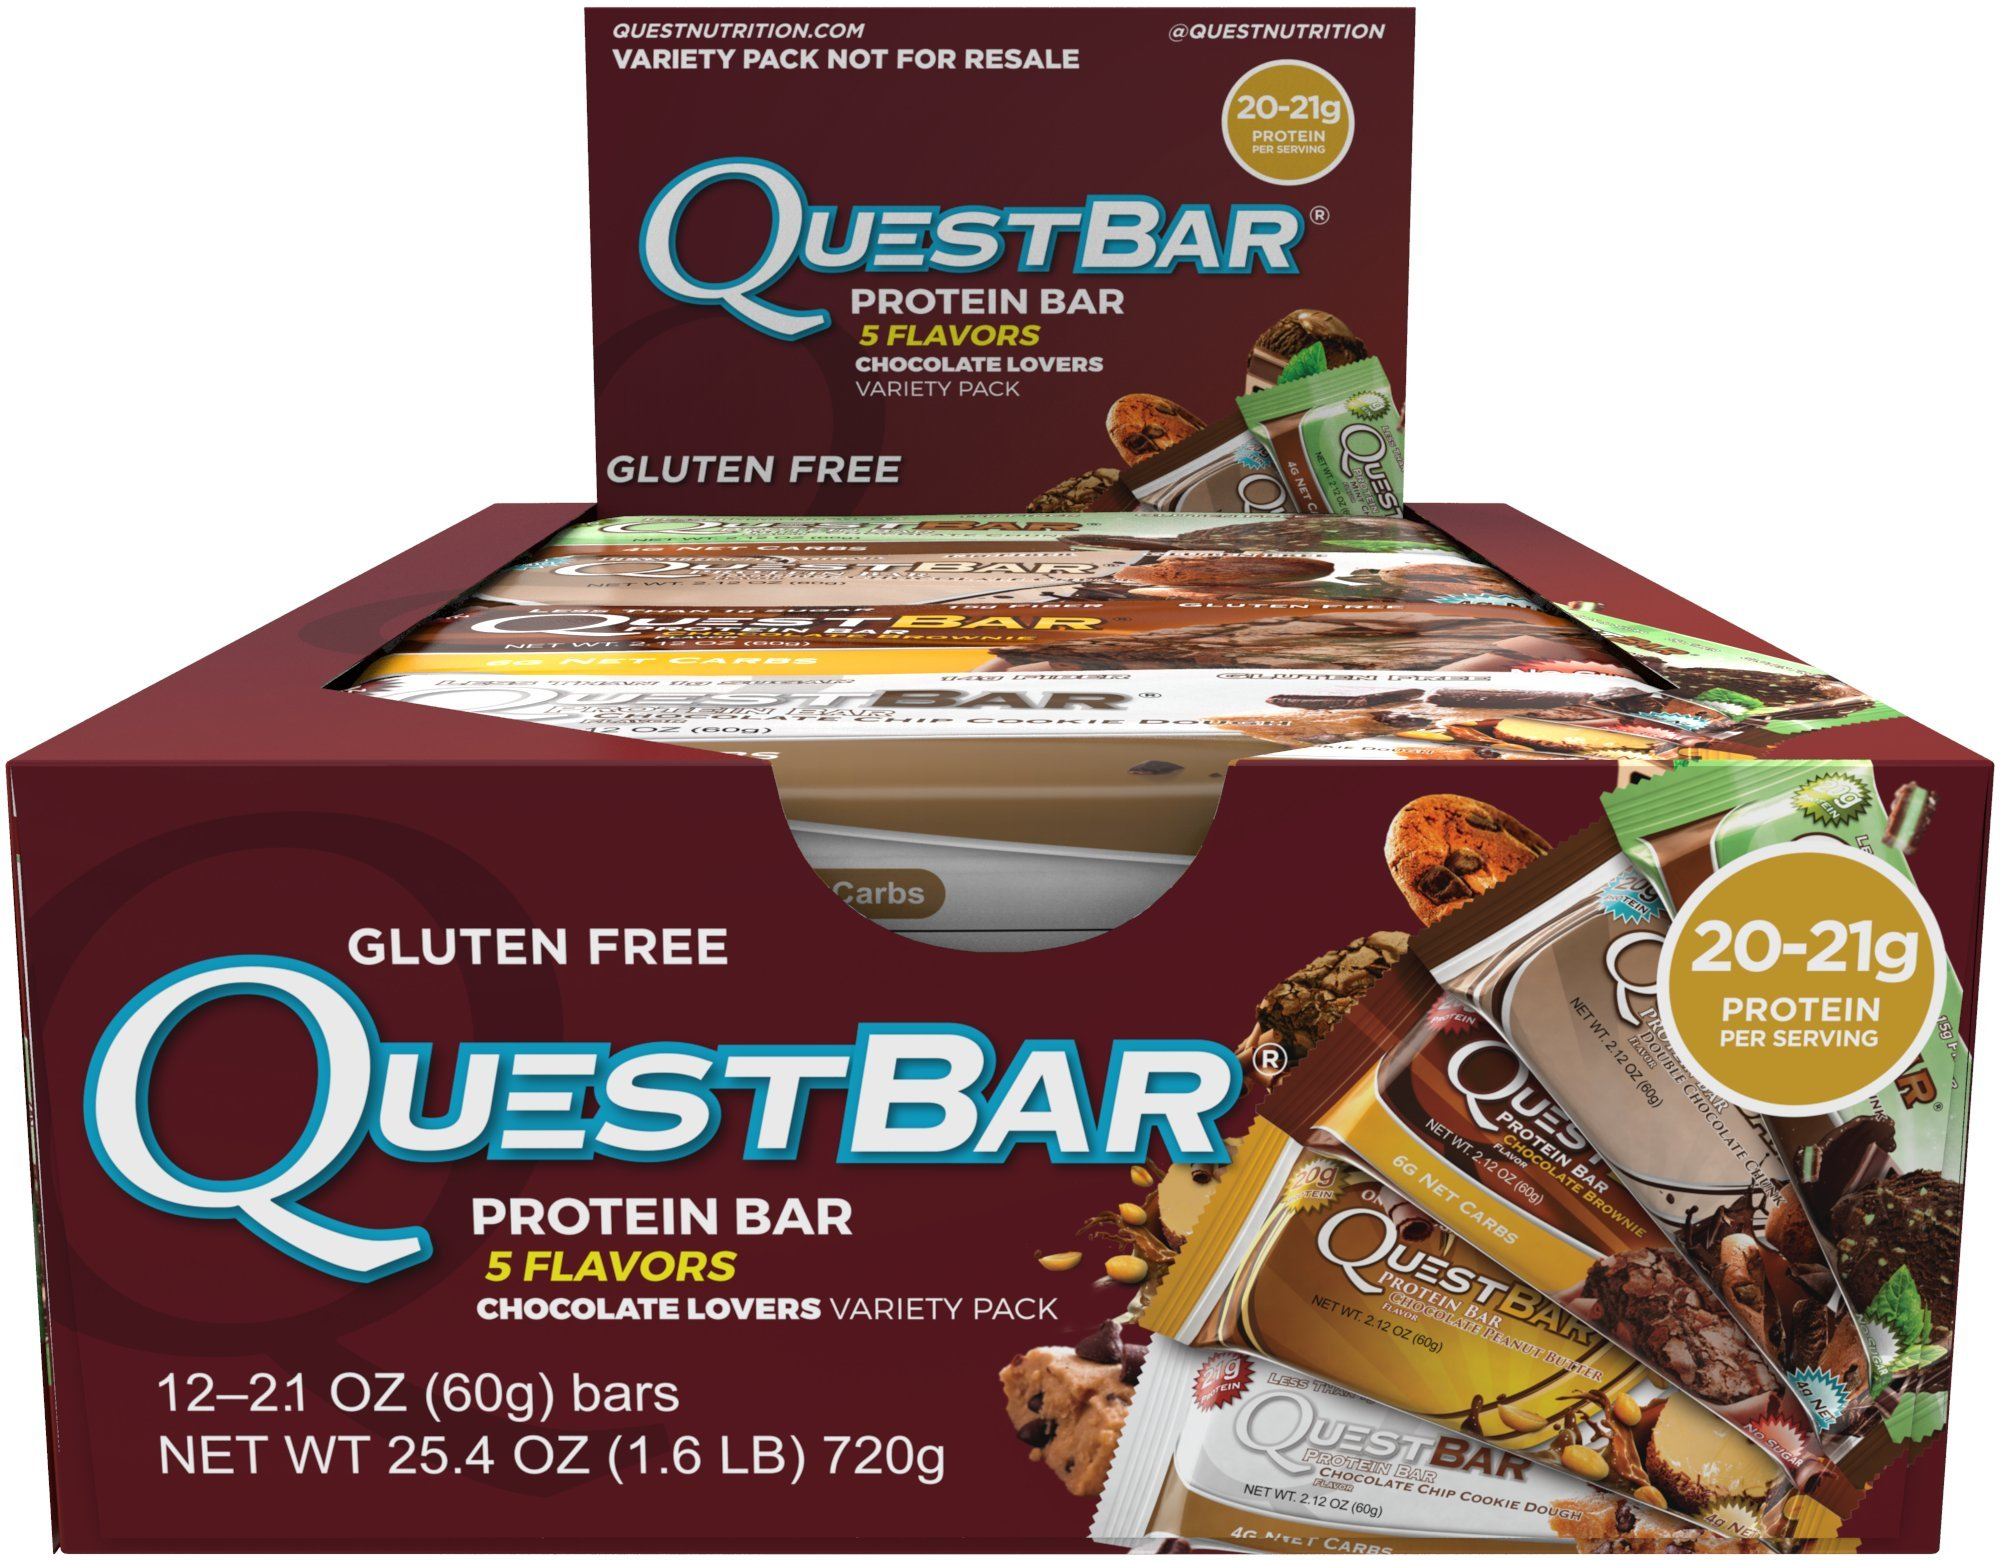 Quest Nutrition Protein Bar, Chocolate Lovers Variety Pack, 5 Flavors, High Protein Bars, Low Carb Bars, Gluten Free, Soy Free, 2.1 oz Bar, 12 Count, Packaging May Vary